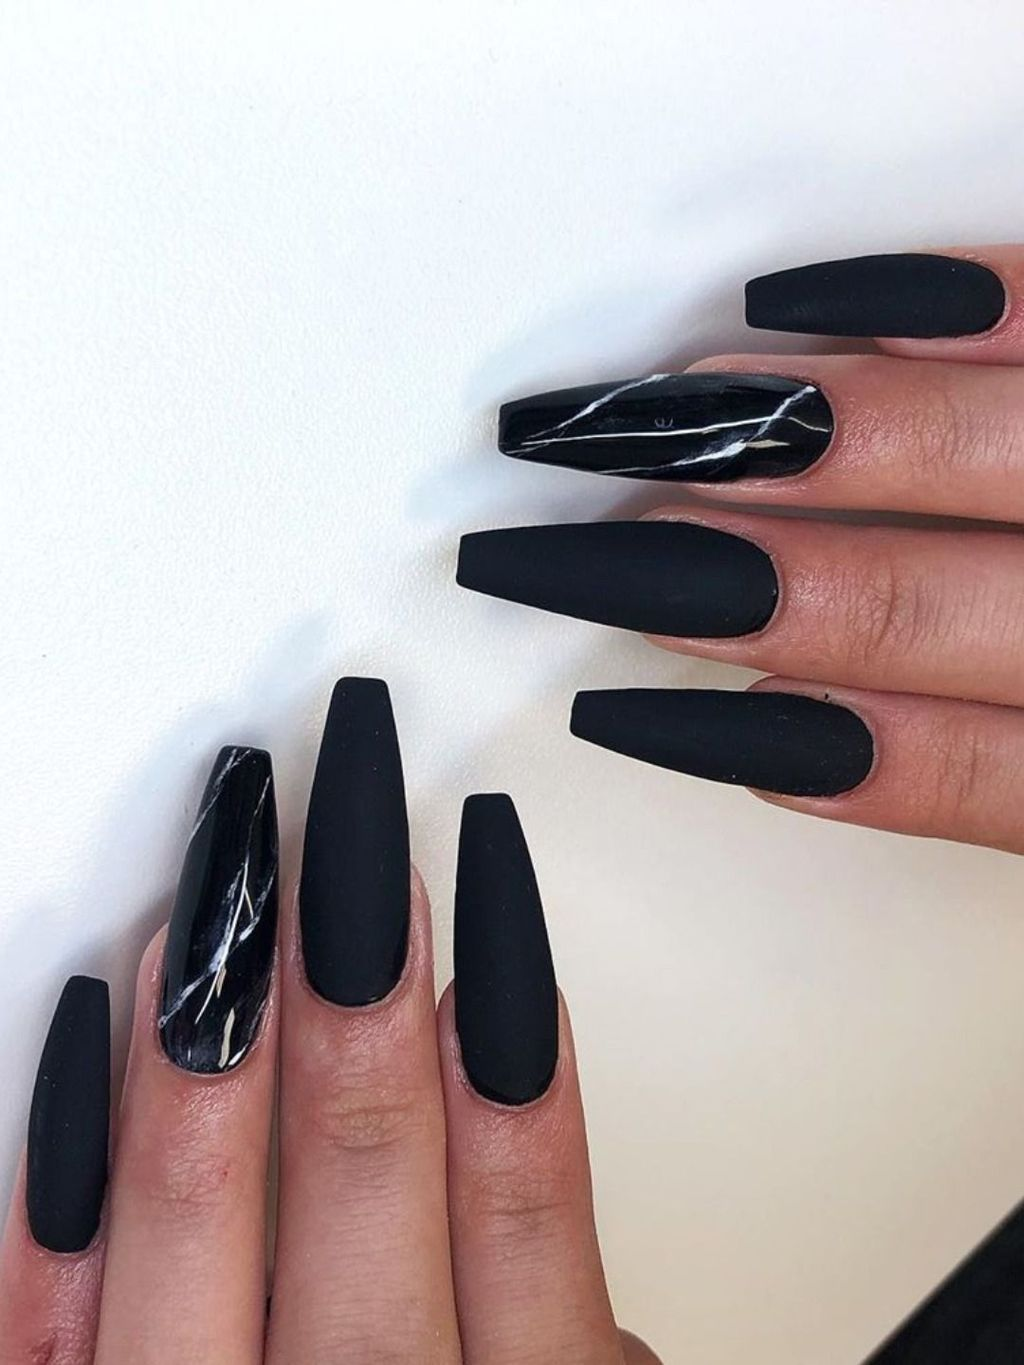 40 Stunning Matte Black Nail Ideas For You To Try Asap In 2020 Black Marble Nails Black Acrylic Nails Long Acrylic Nails Coffin